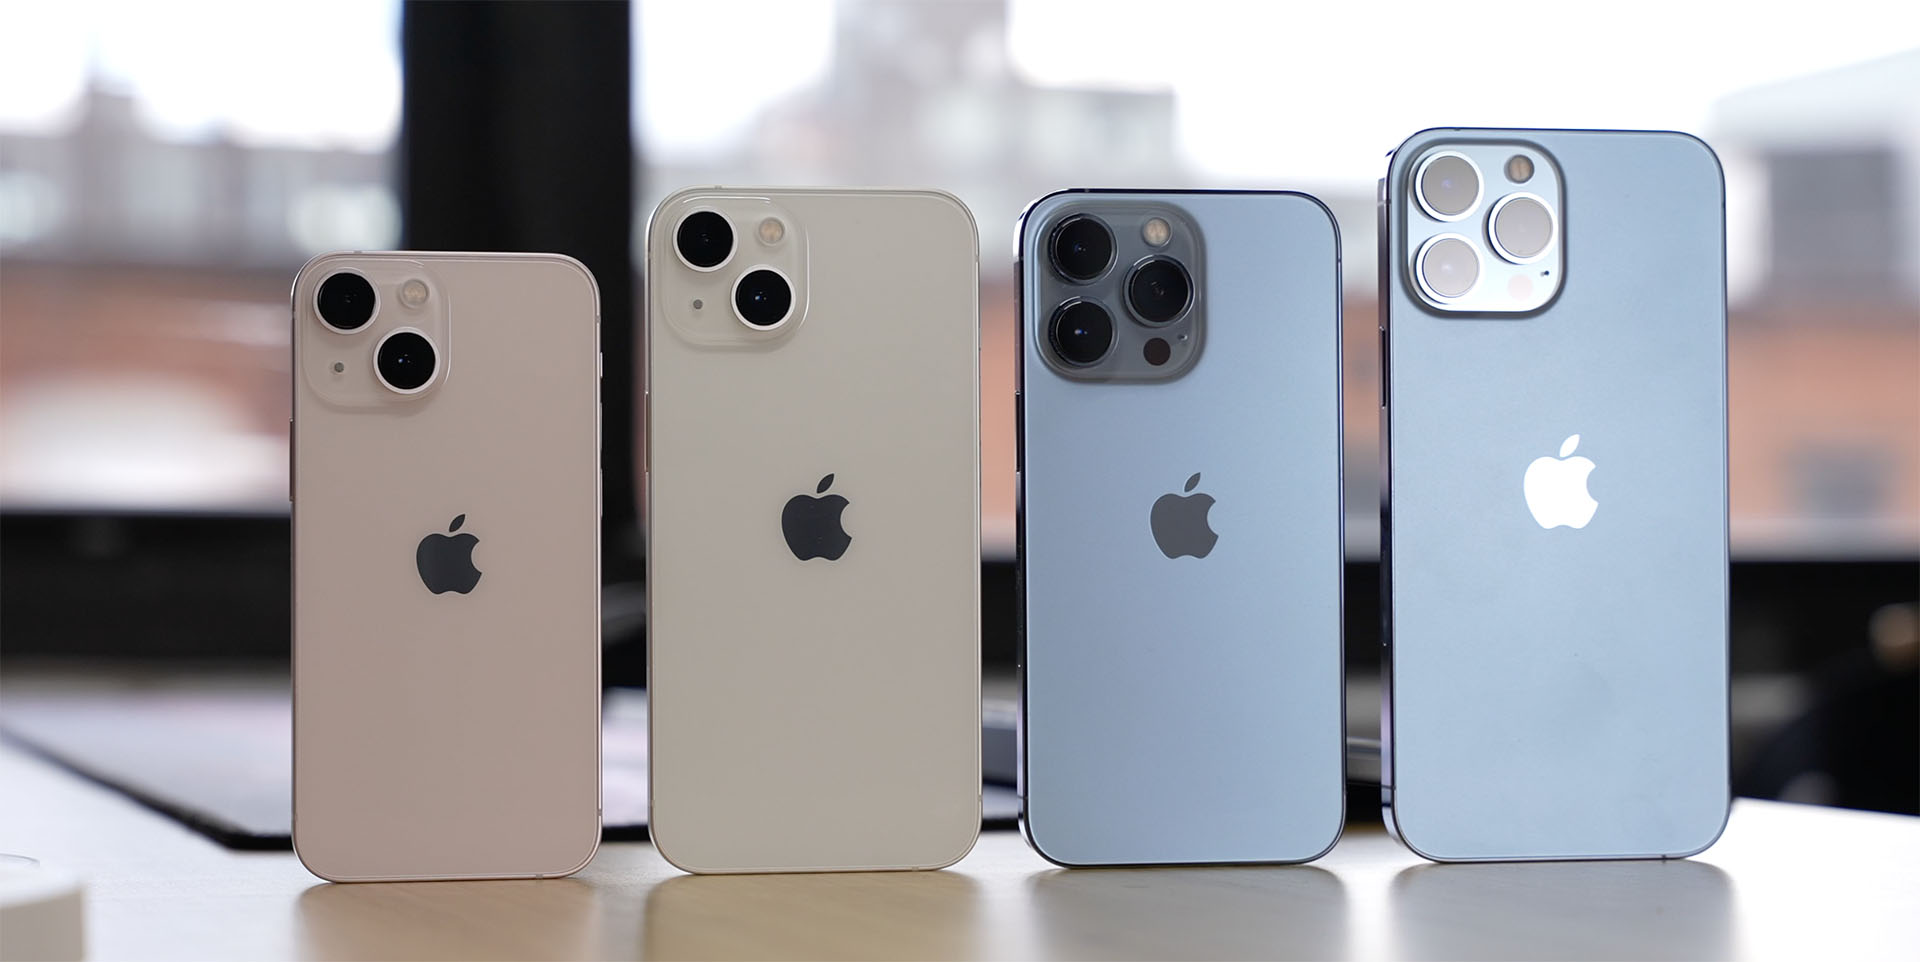 iPhone 13 line-up